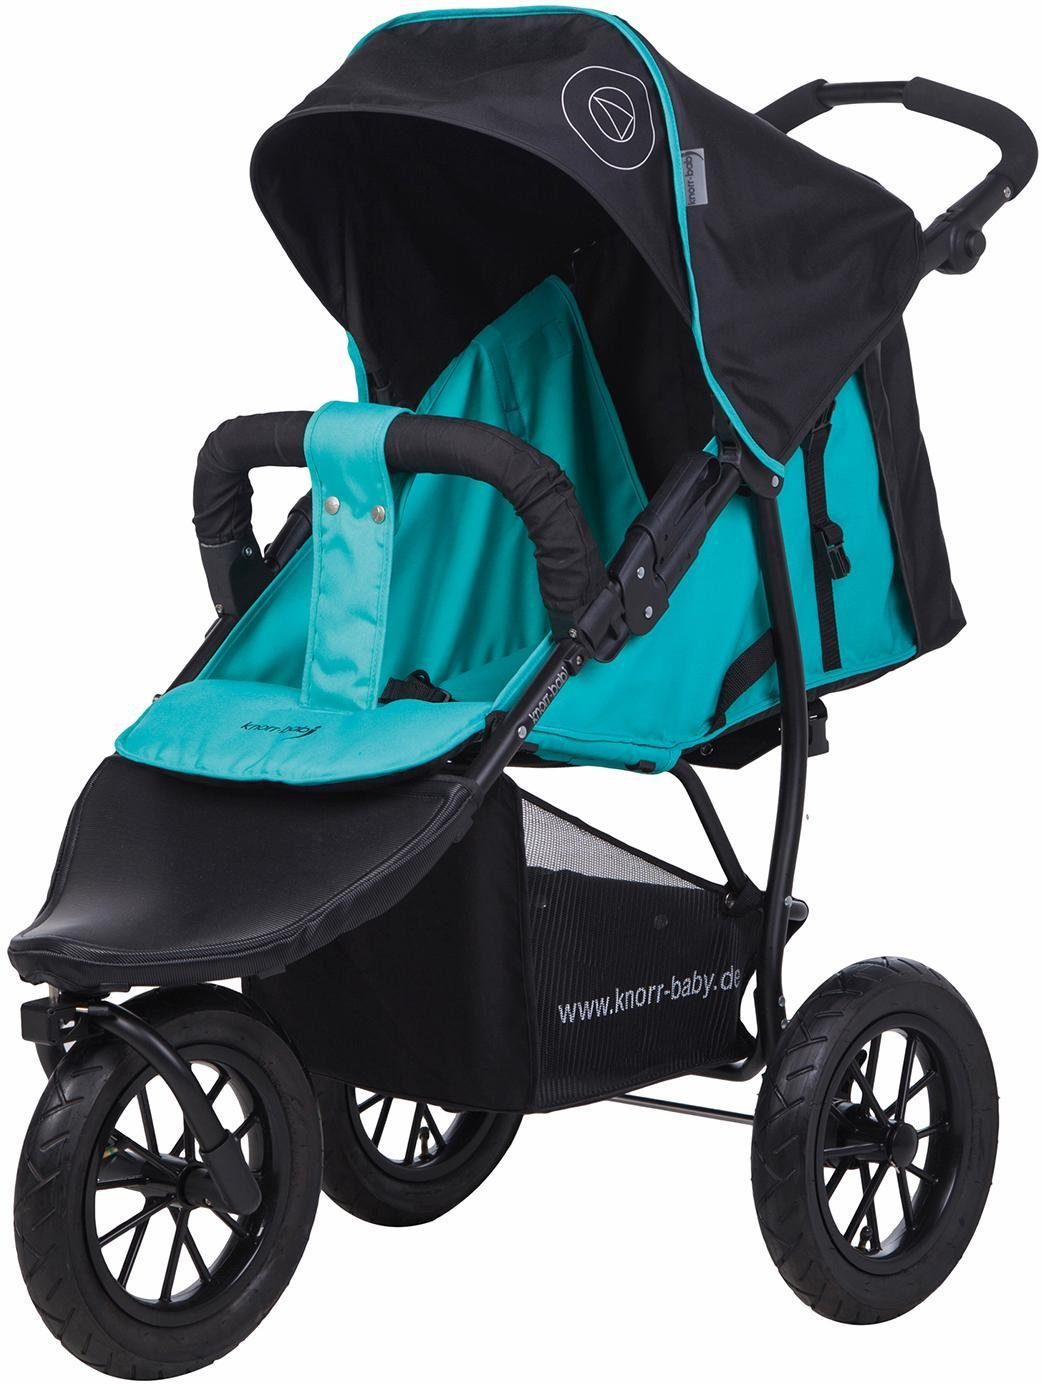 knorr-baby Jogger-Kinderwagen, »Joggy S Happy Colour, blau«